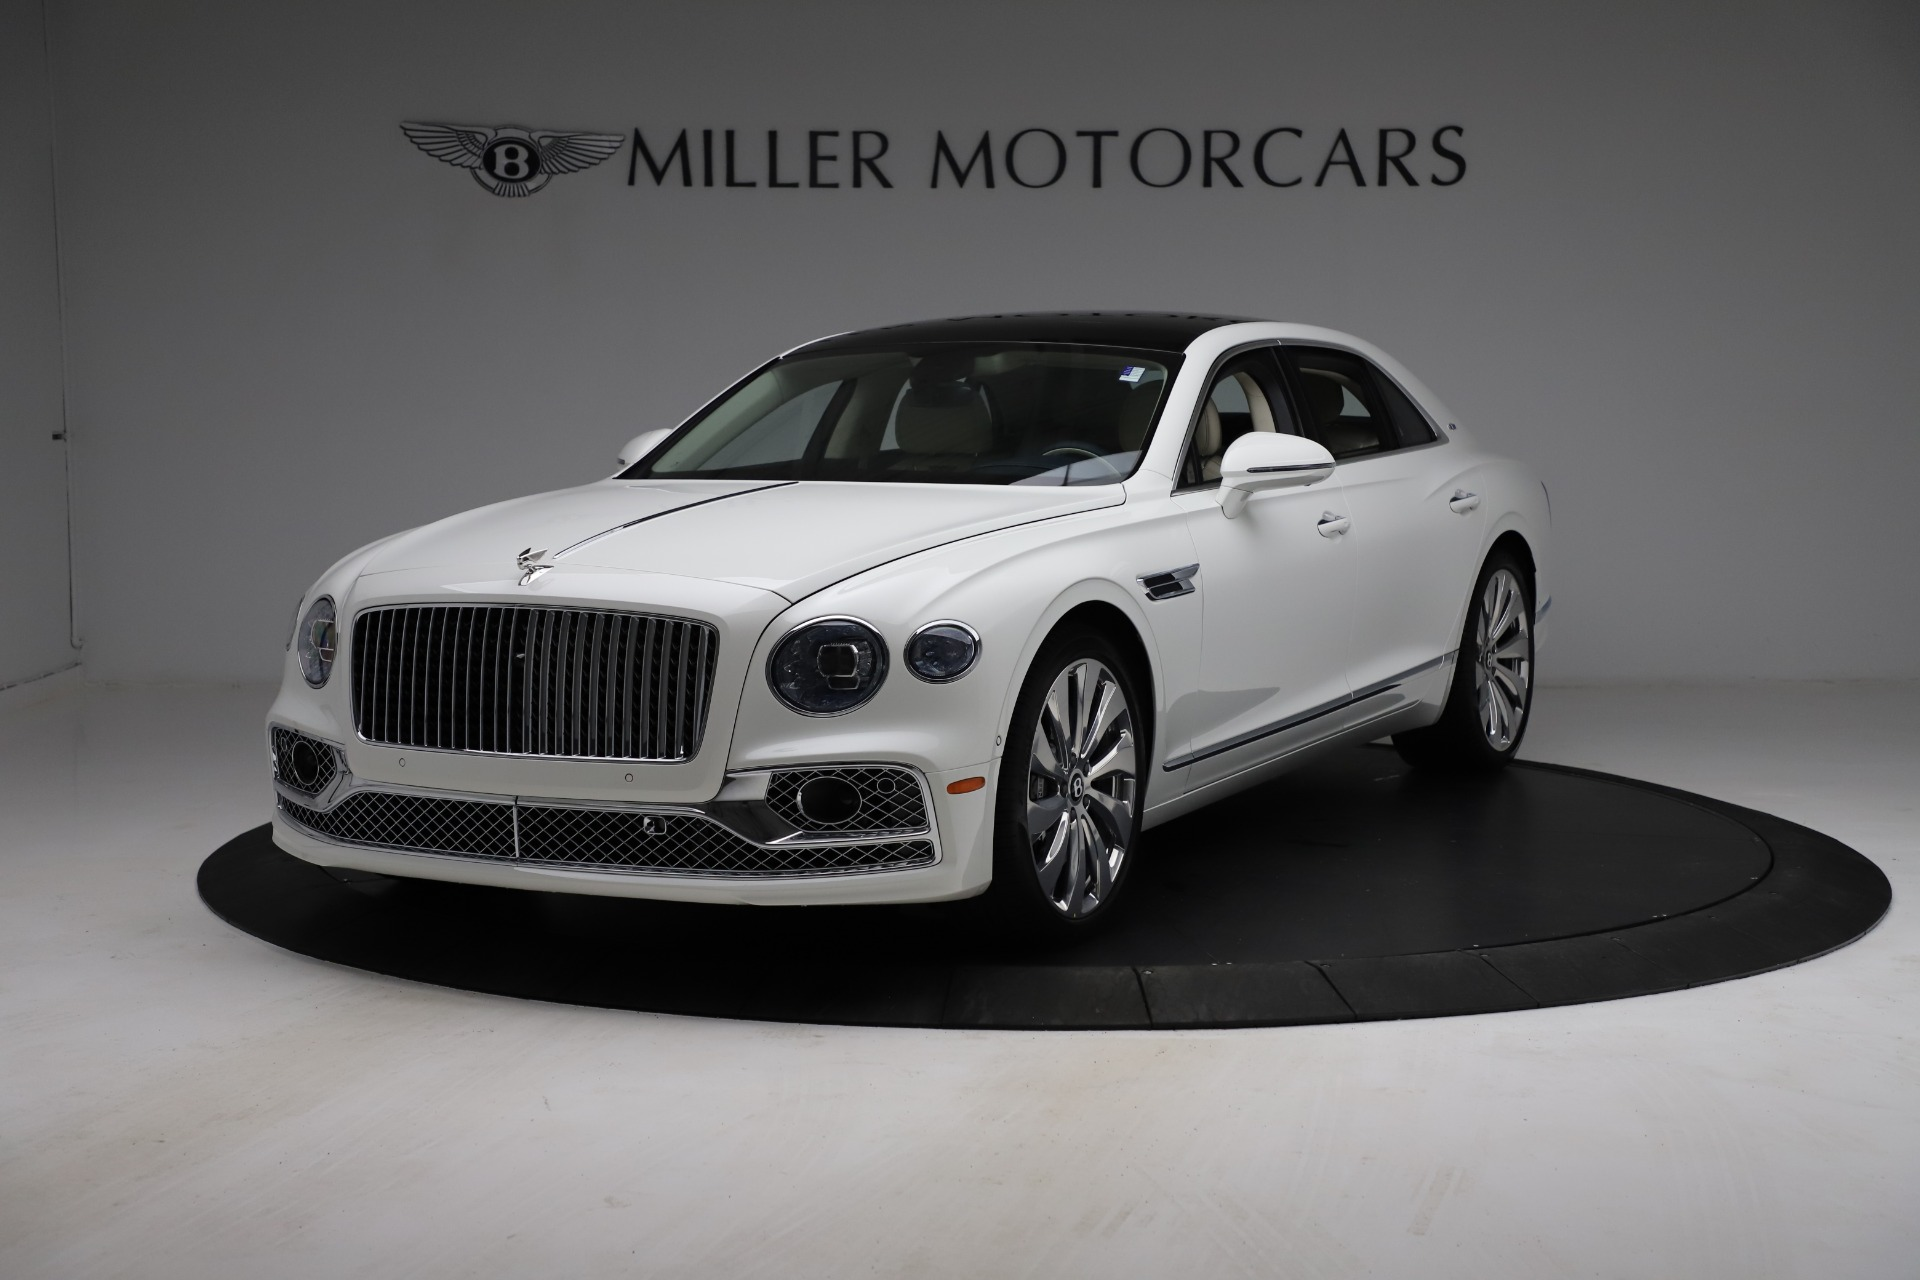 New 2021 Bentley Flying Spur W12 First Edition for sale Sold at Rolls-Royce Motor Cars Greenwich in Greenwich CT 06830 1